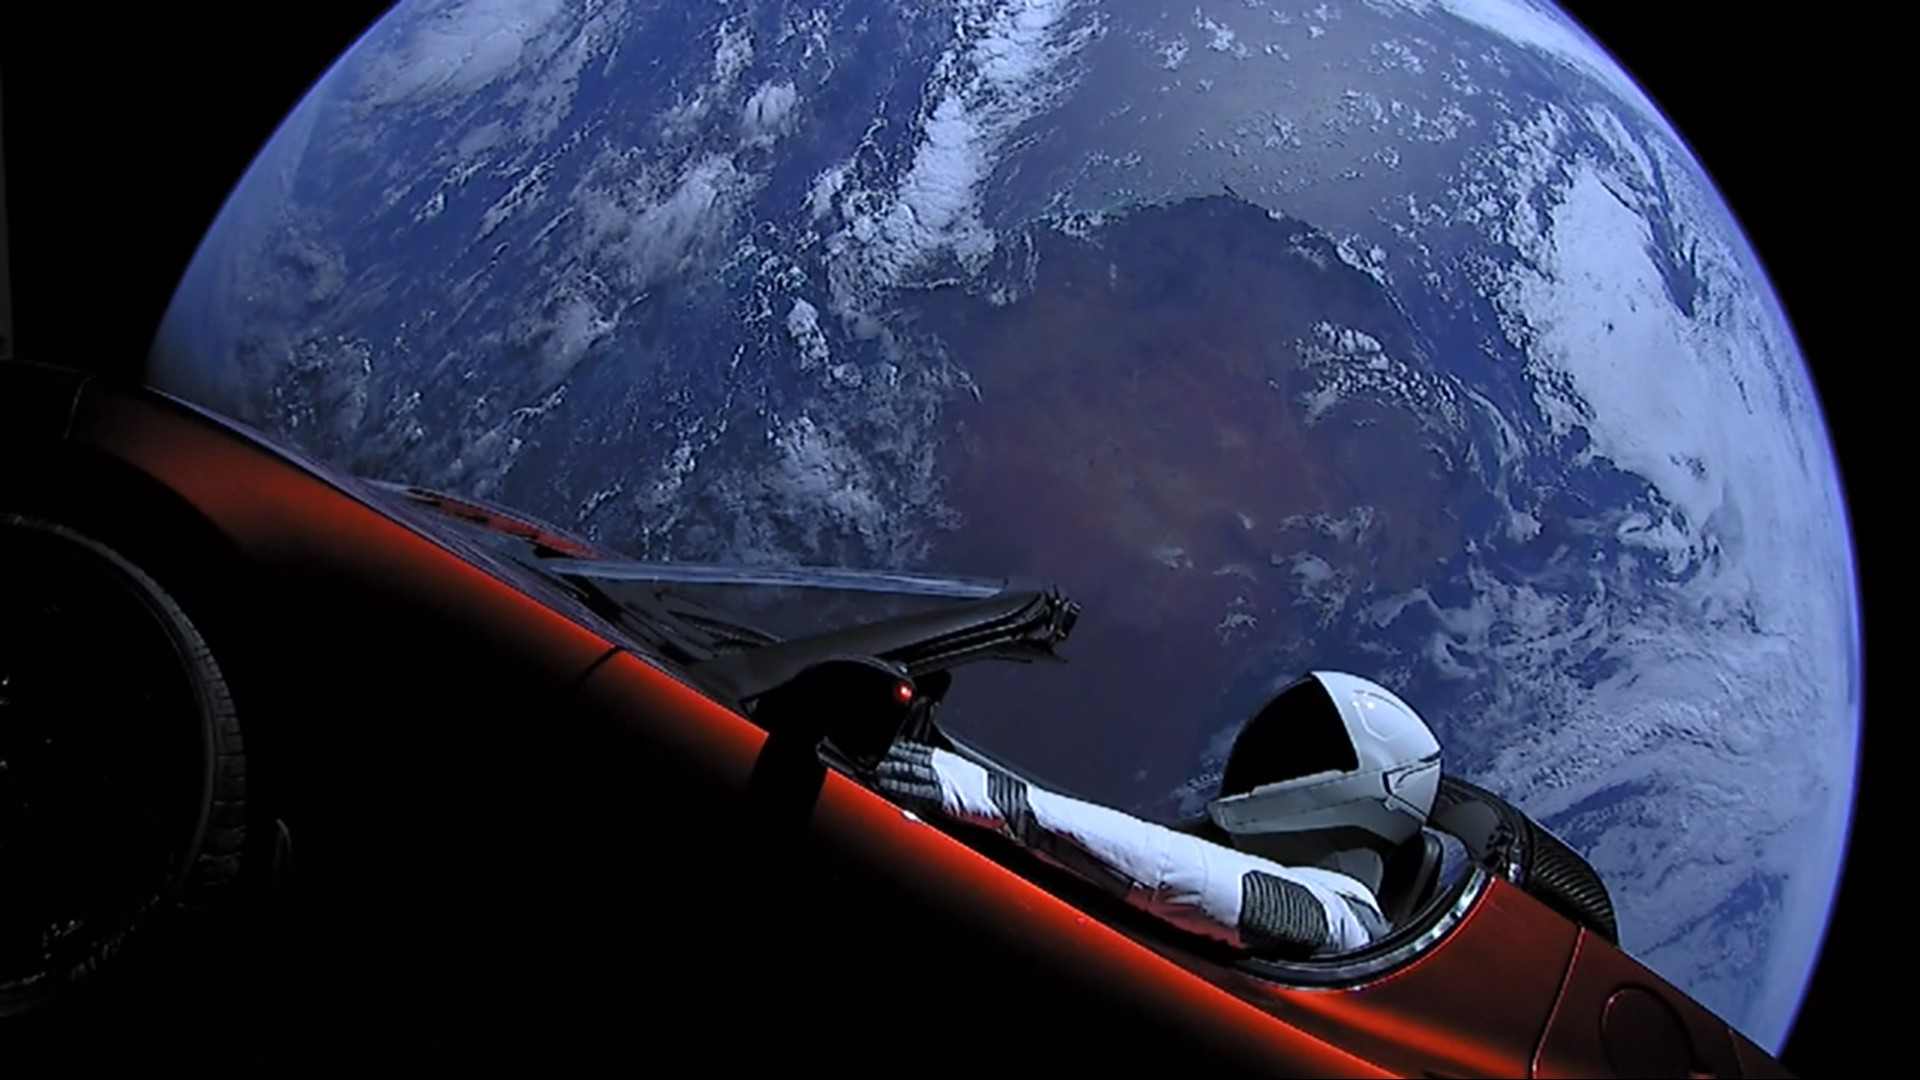 The Earth as seen from orbit is the backdrop for what looks like an astronaut driving a red Tesla convertible.